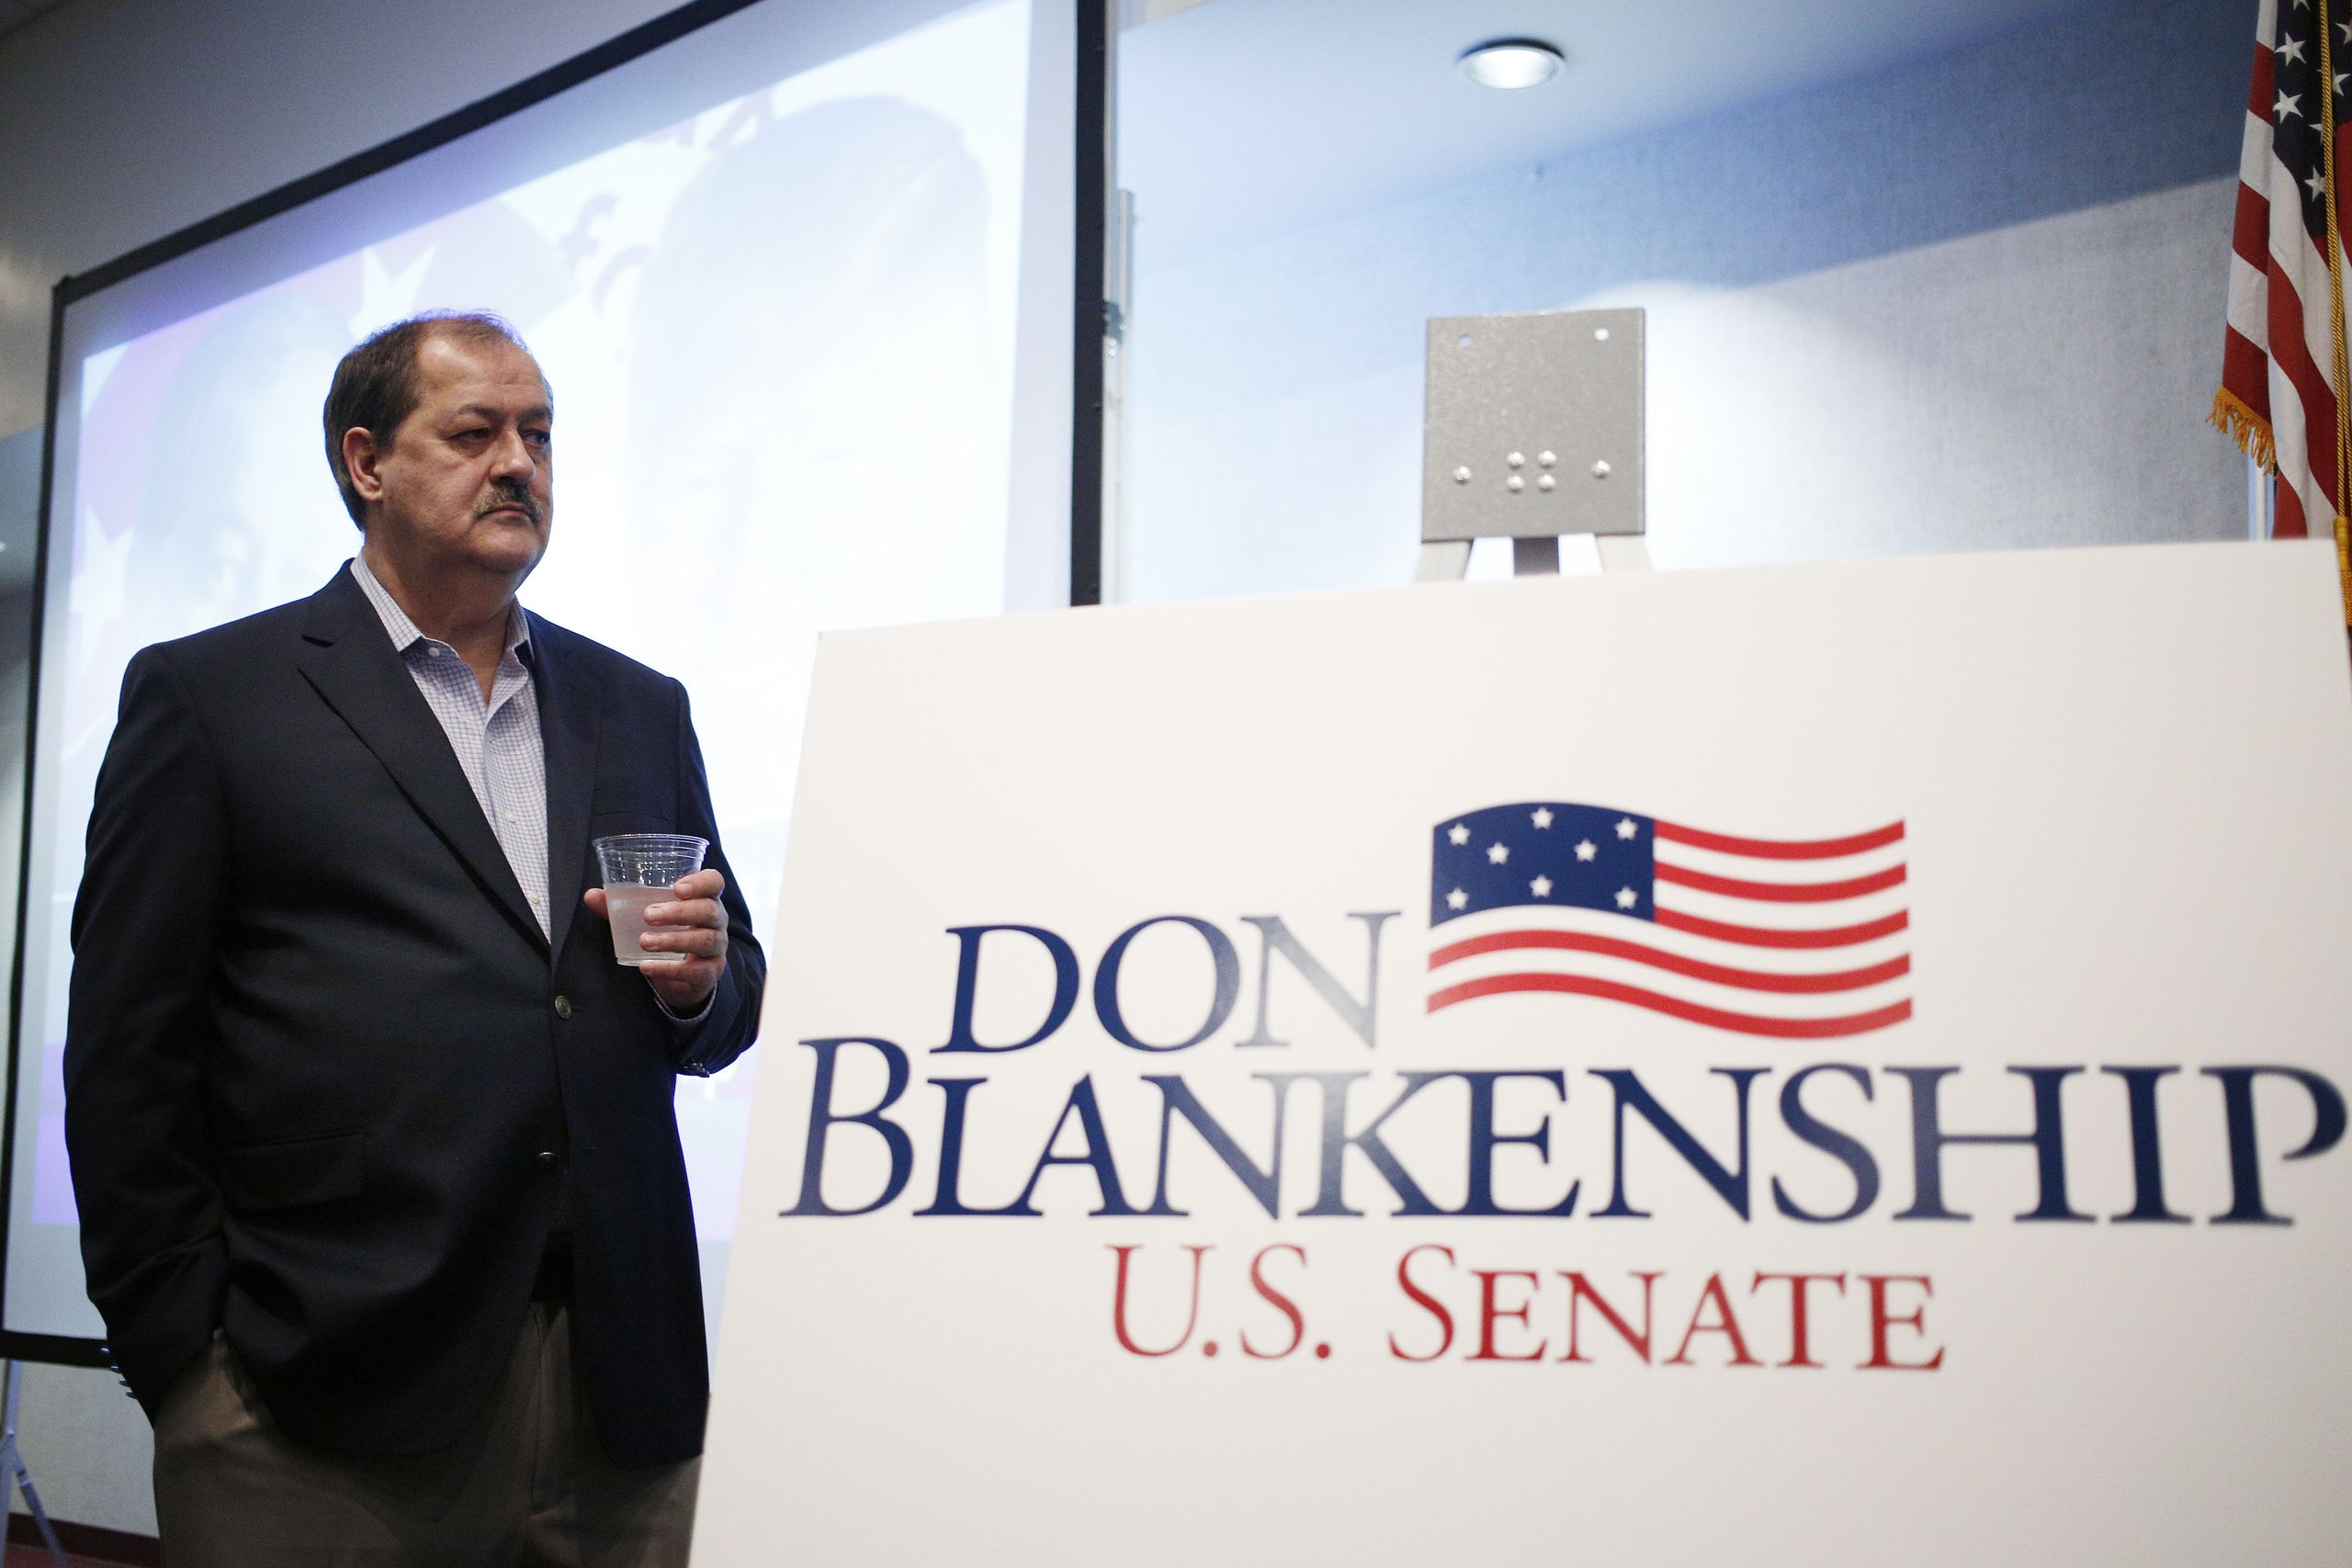 Blankenship at a campaign event on Feb. 1. The former coal CEO has denied any responsibility for the death of 29 miners at Up